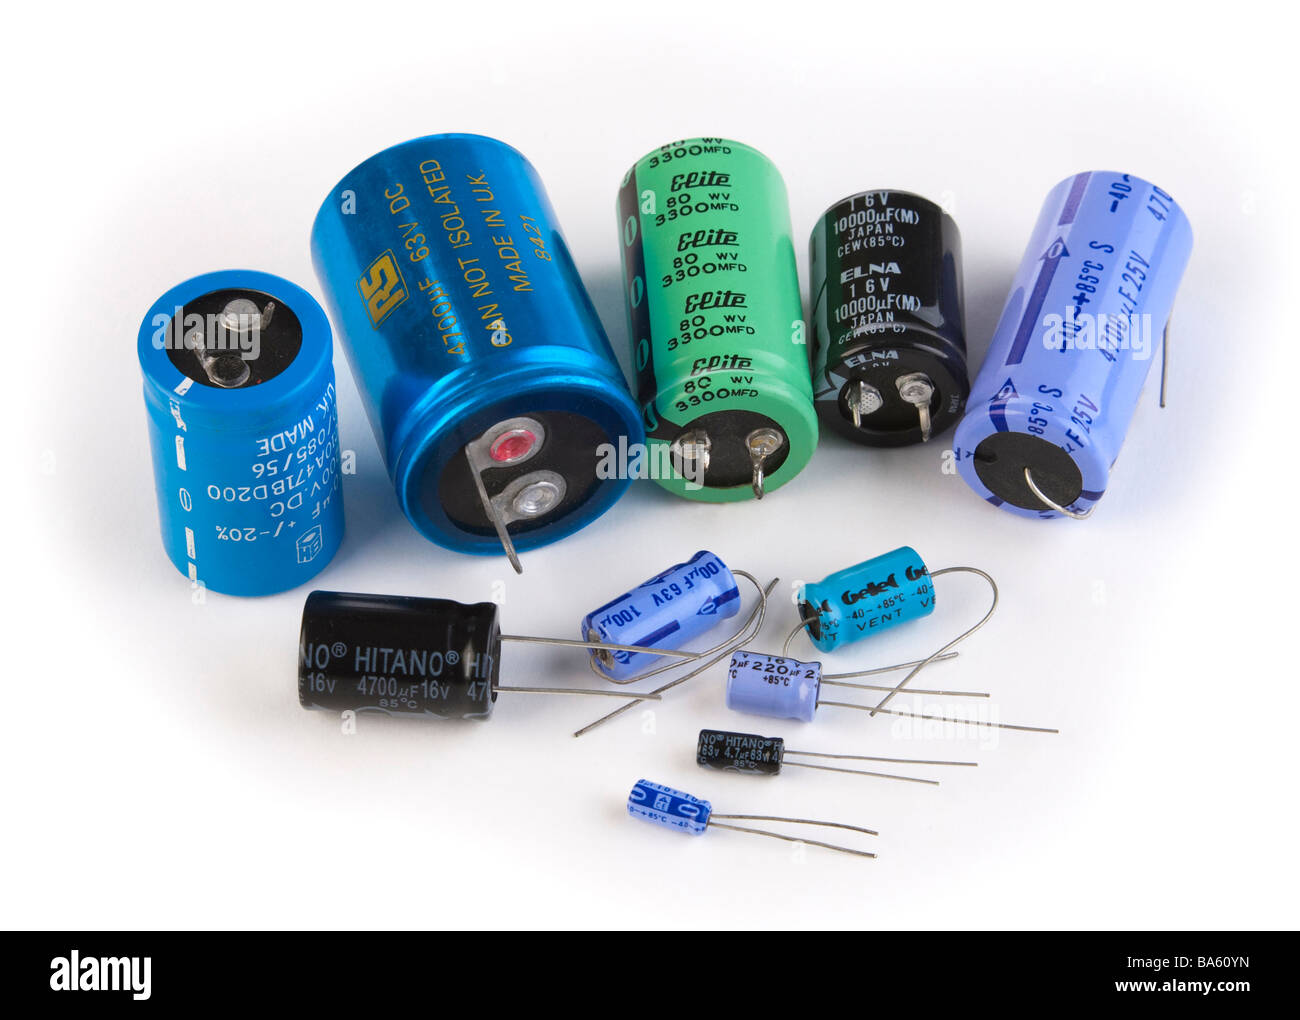 various electrolytic capacitors - Stock Image